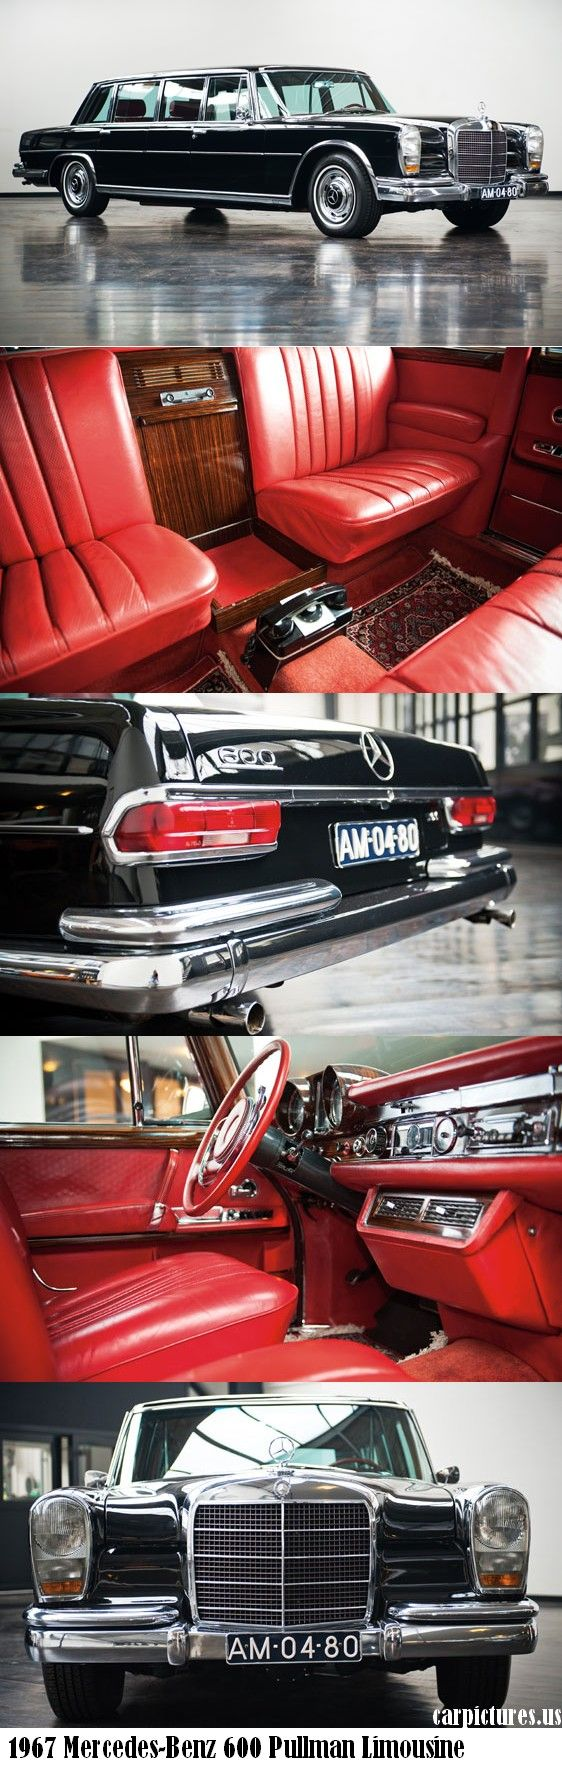 1967 Mercedes-Benz 600 Pullman Limousine -- drove one of these once: amazing.